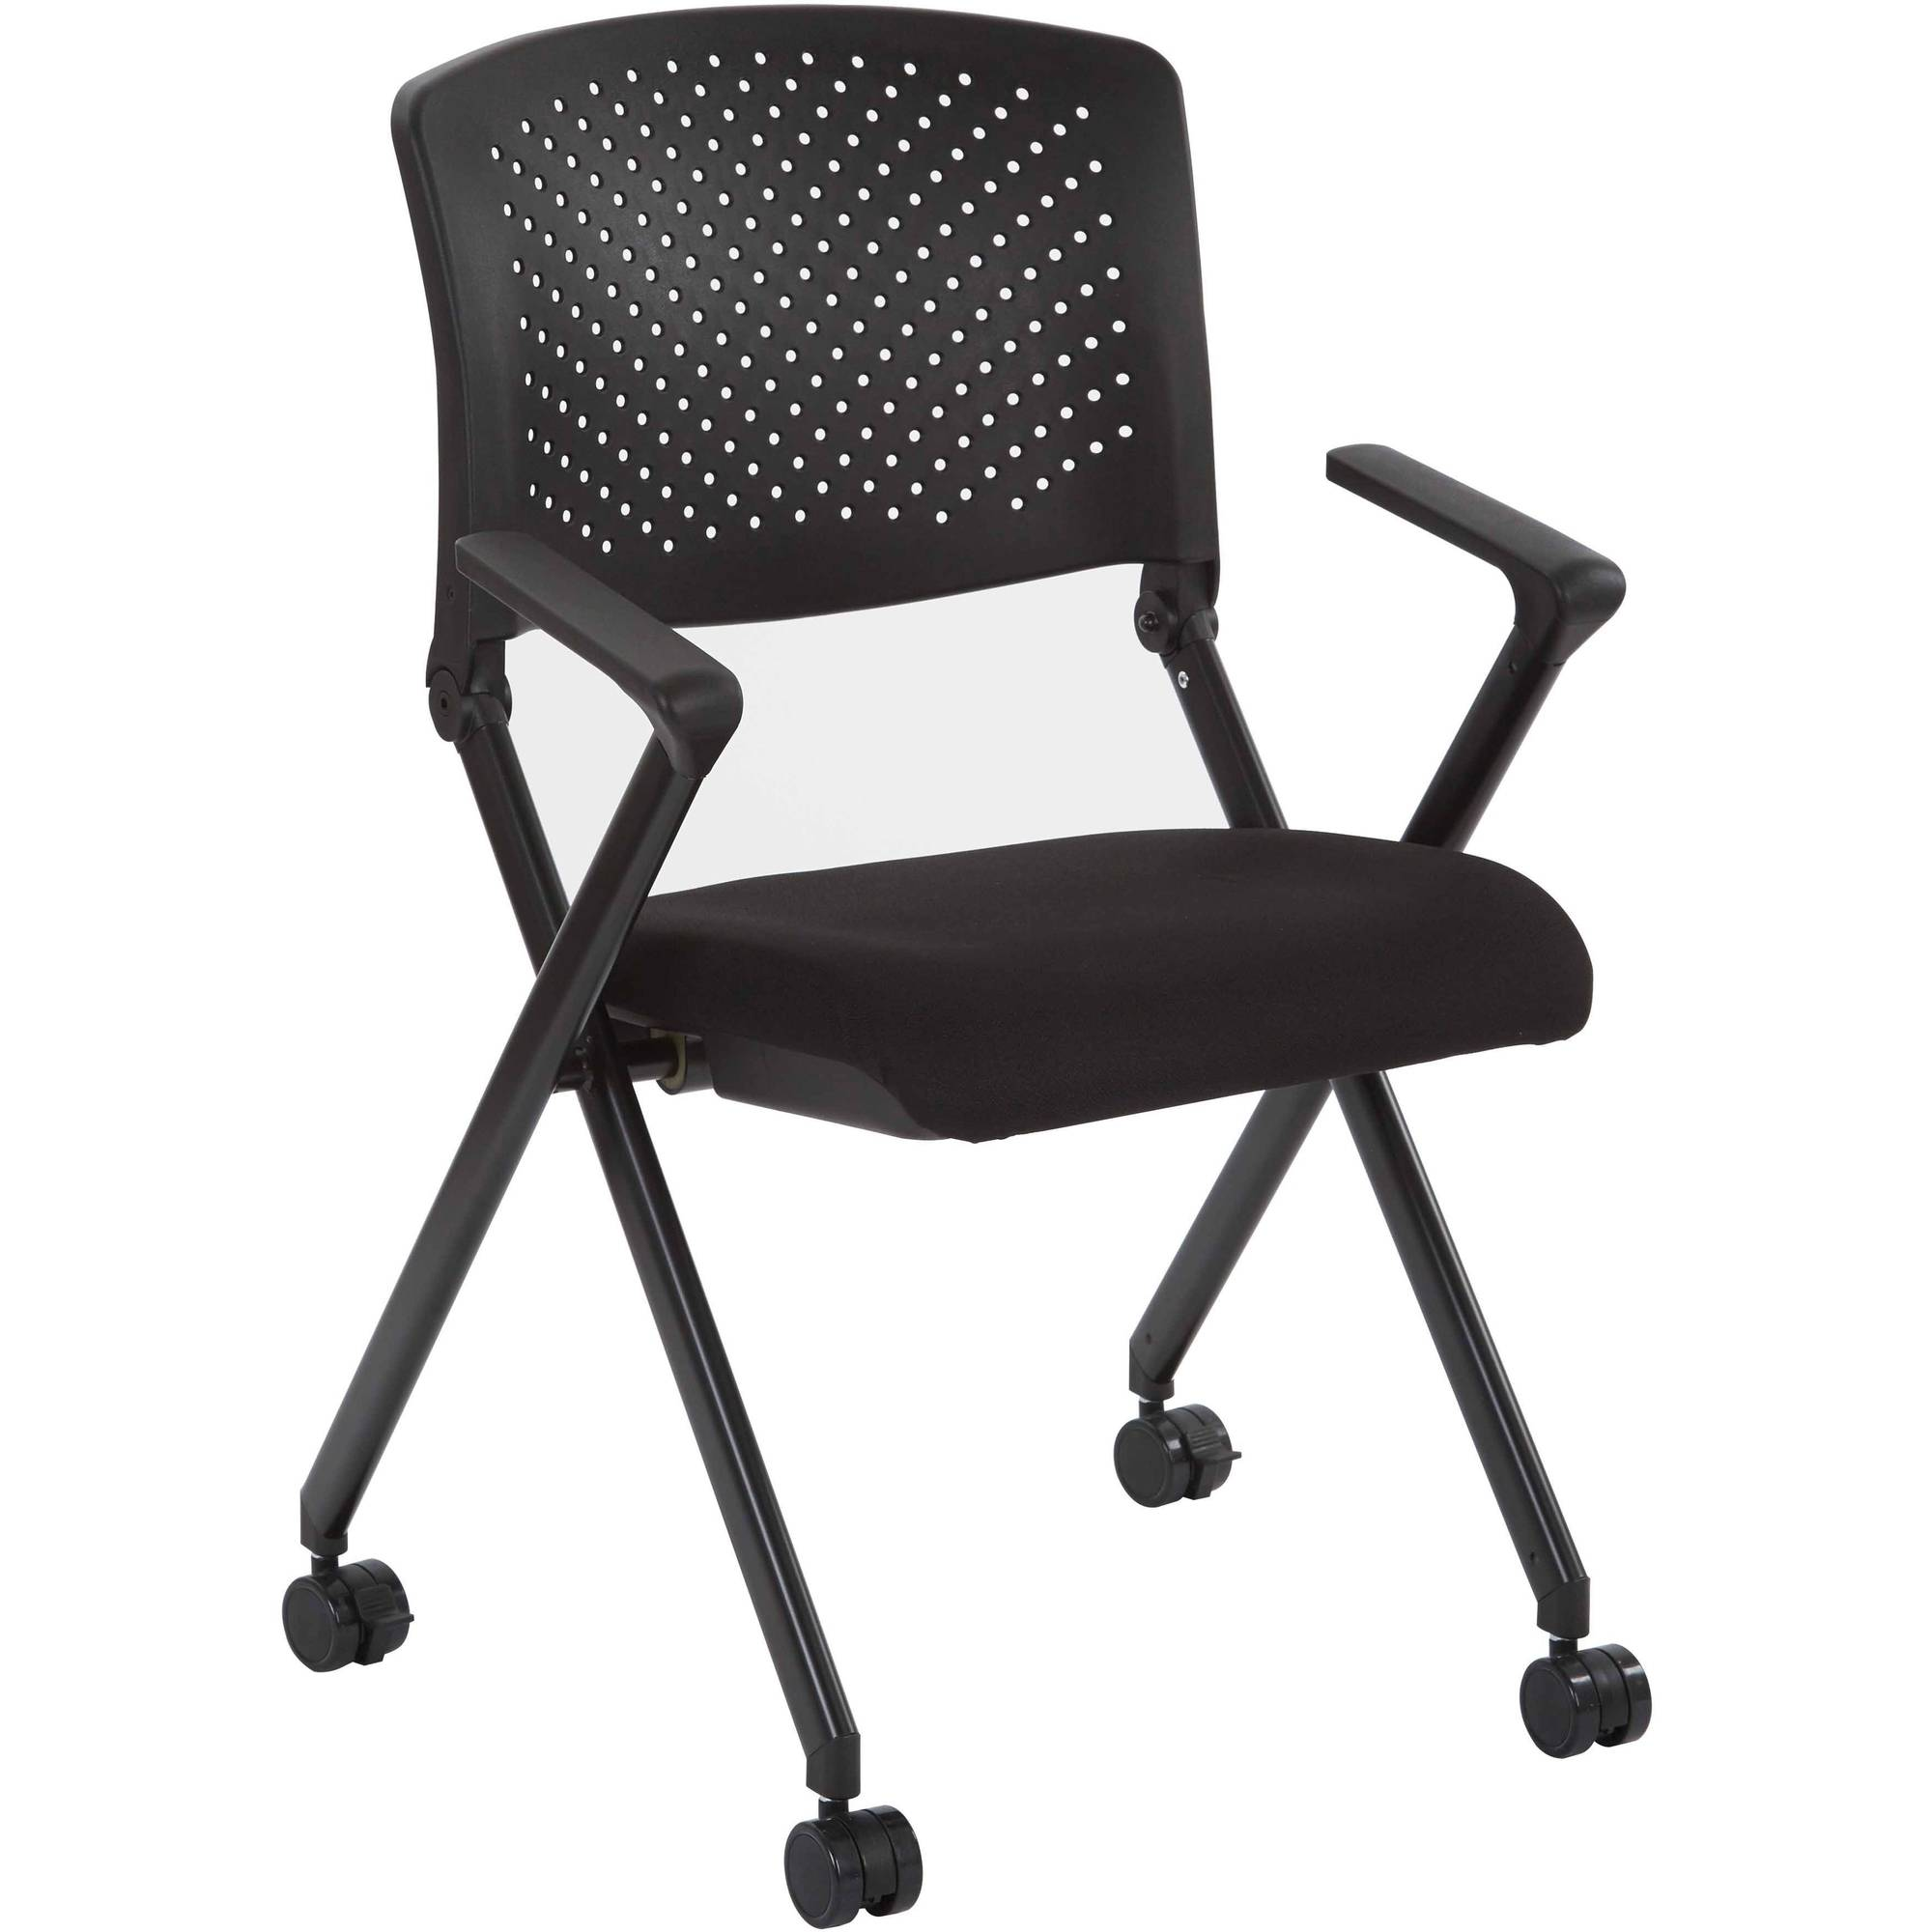 Nesting Chair with Breathable Plastic Mesh Back and Fabric Seat, Multiple Colors